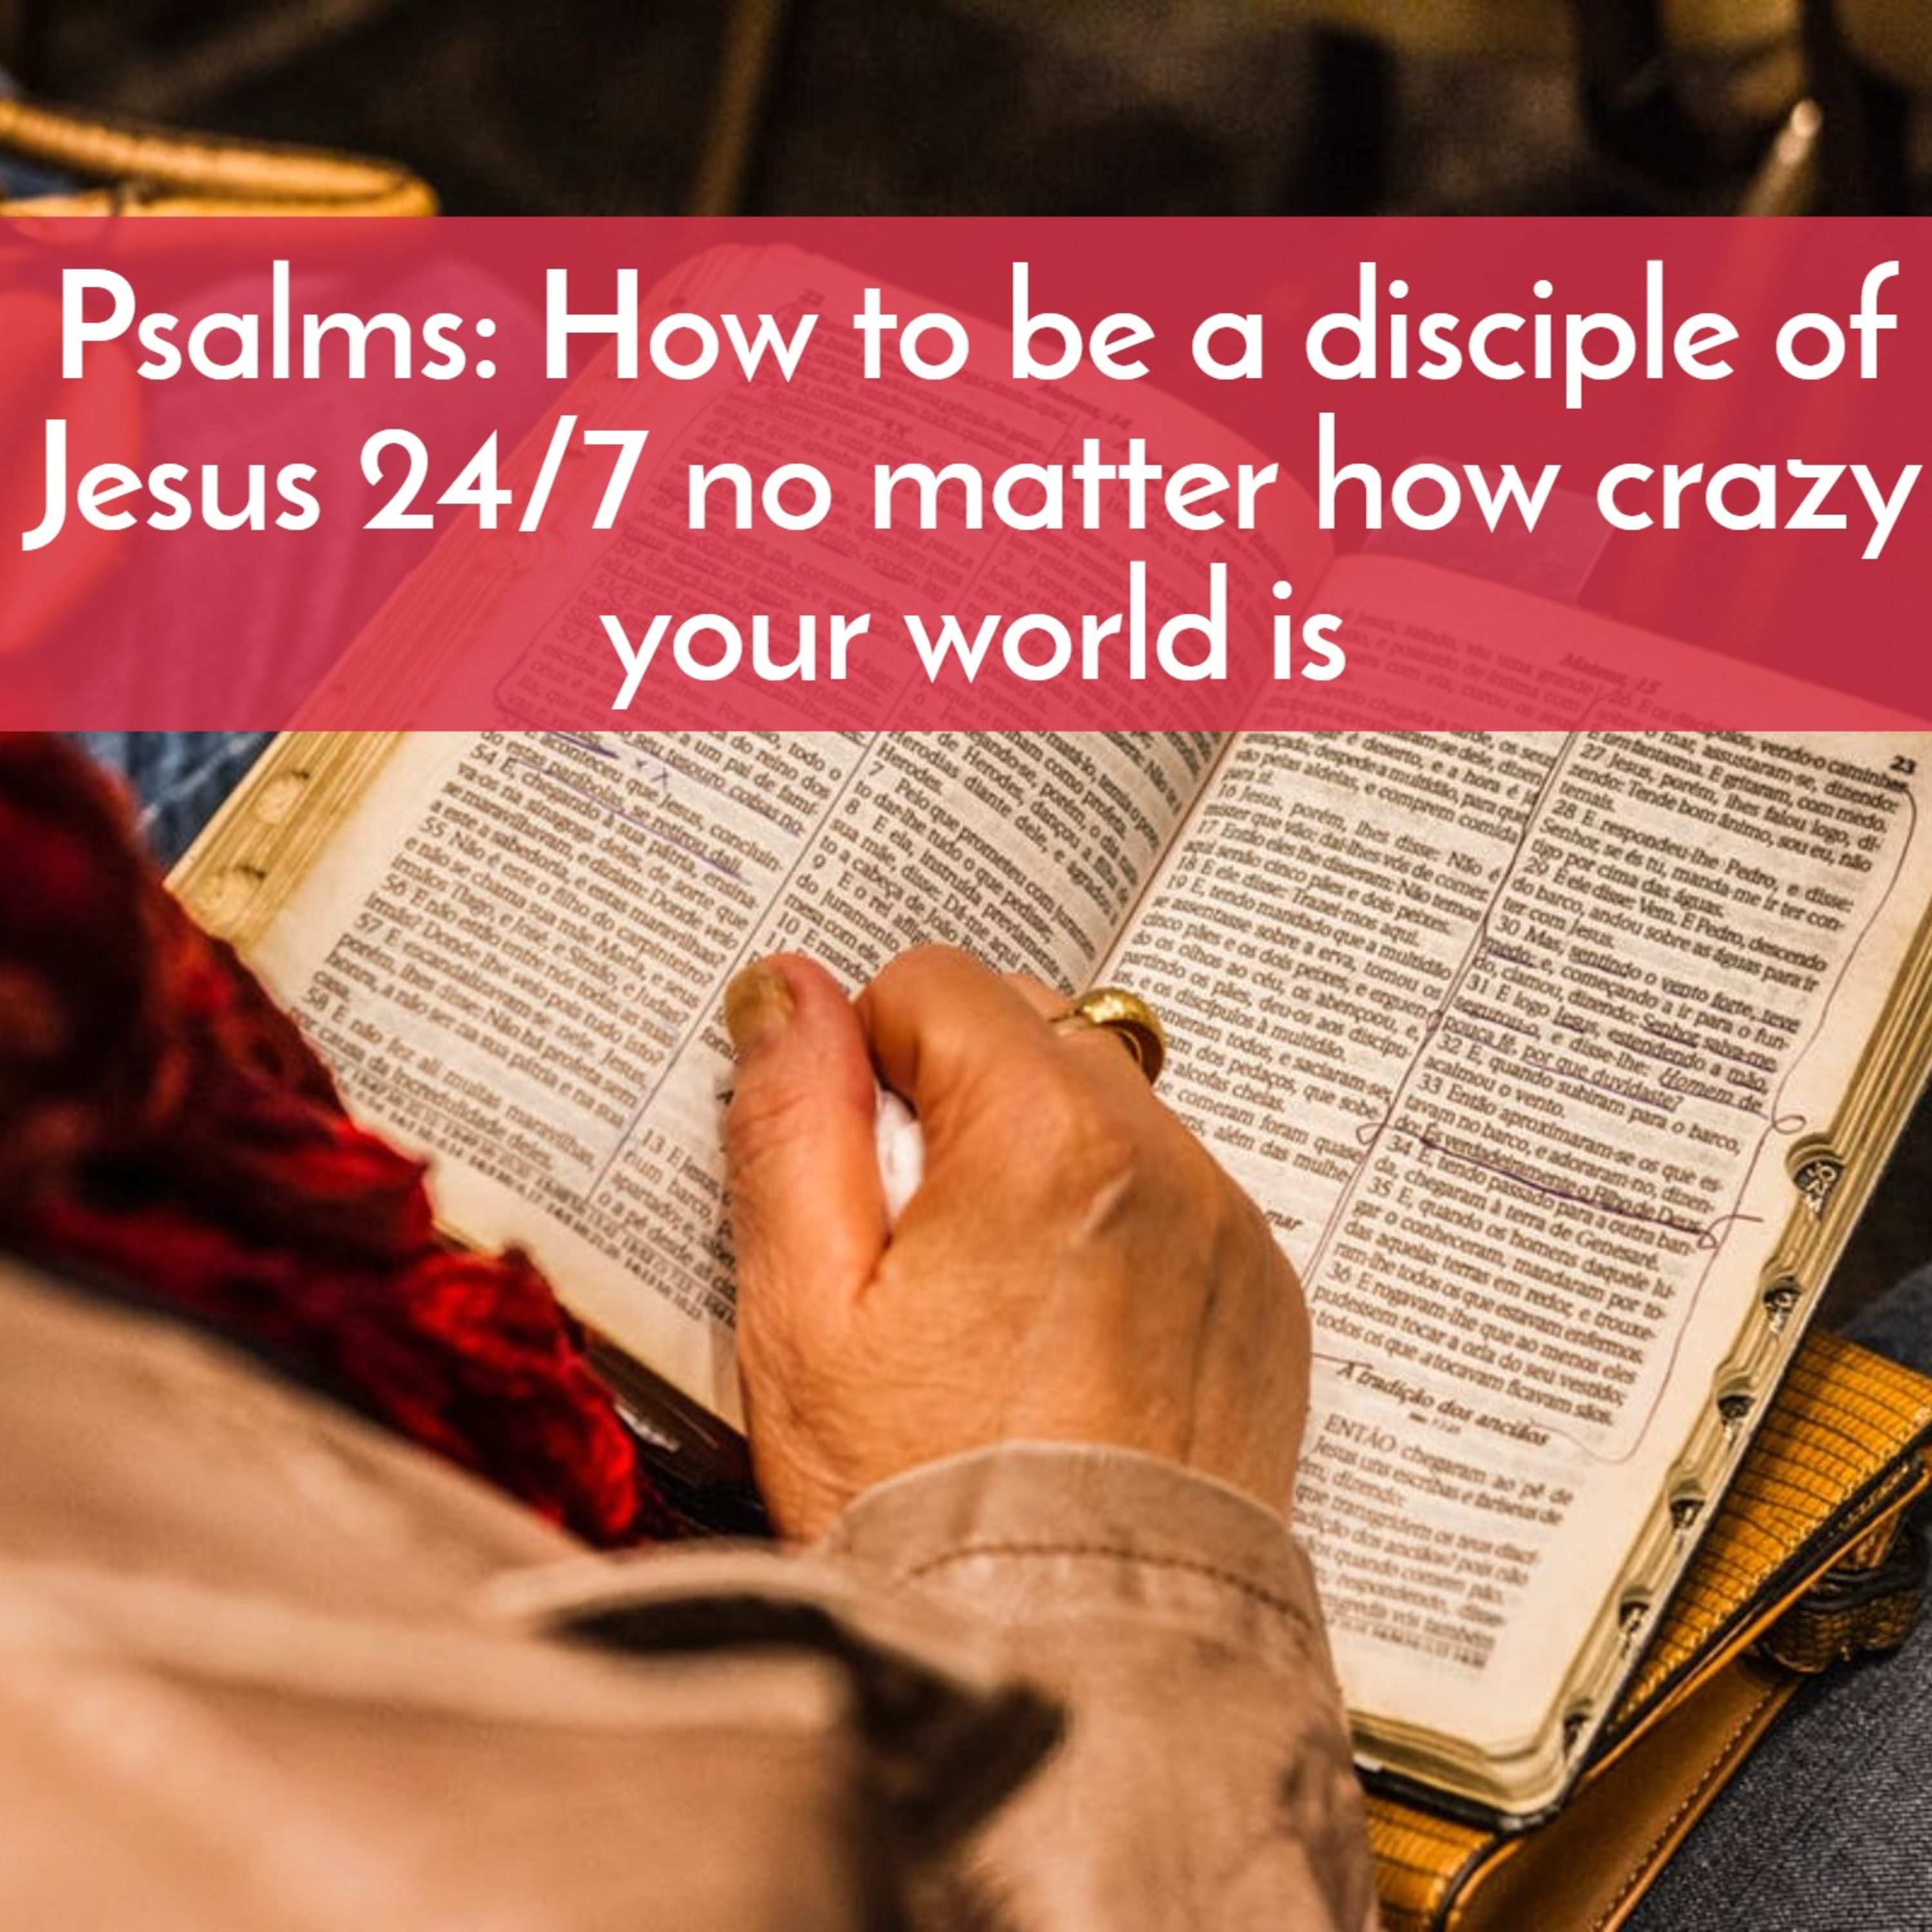 Psalms: How to be a disciple of Jesus 24/7 no matter how crazy your world is